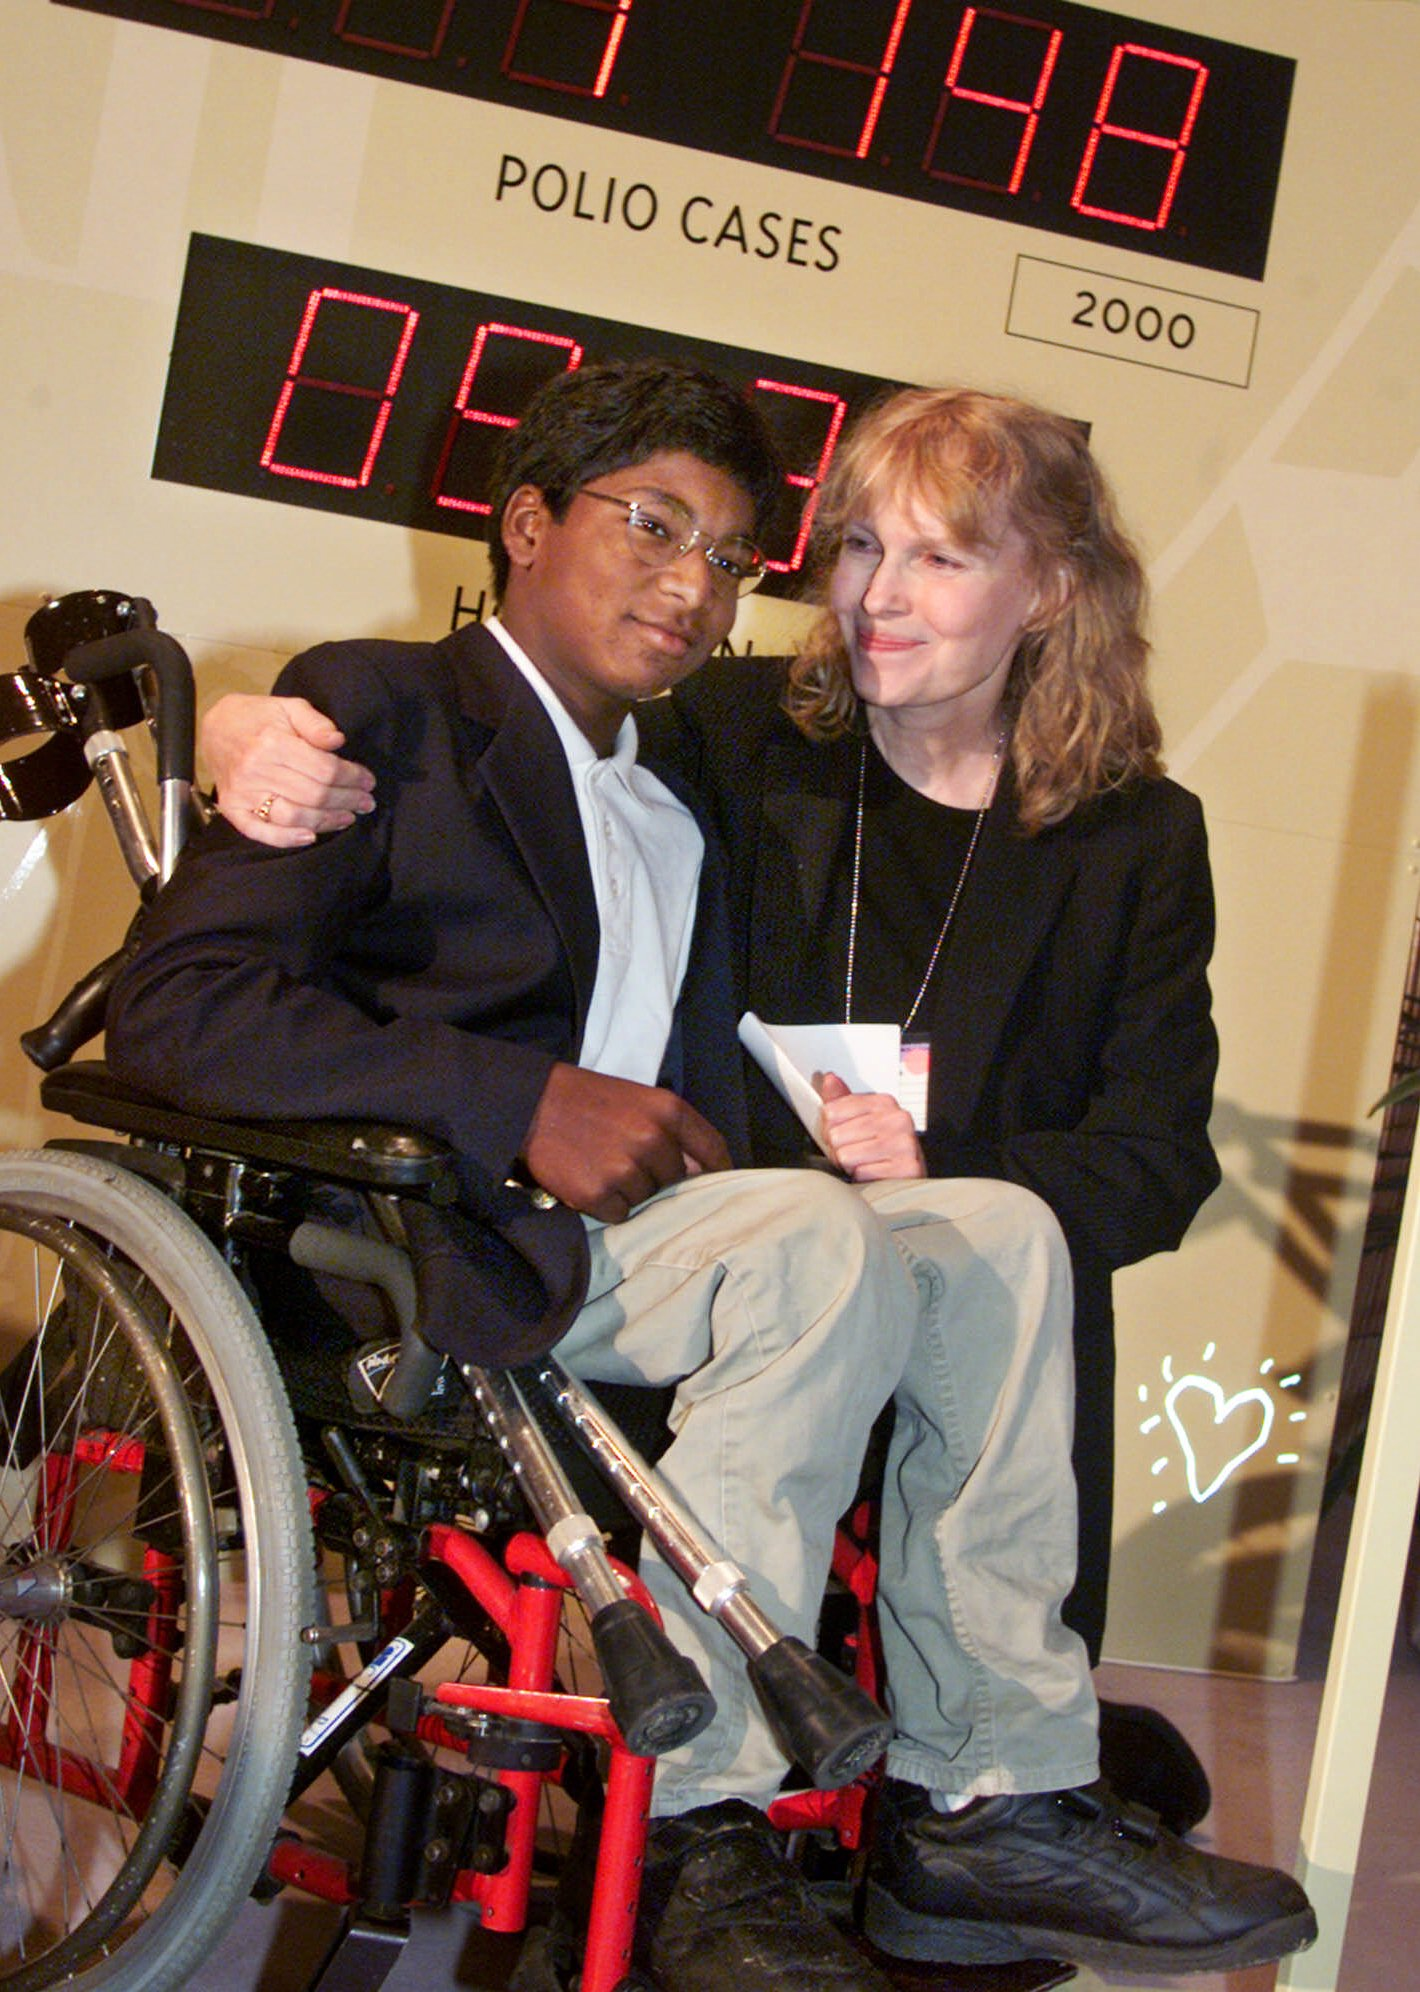 Actress Mia Farrow and her adopted son Thaddeus as they participate in the global summit on polio eradication, Sept. 27, 2000, at United Nations headquarters.